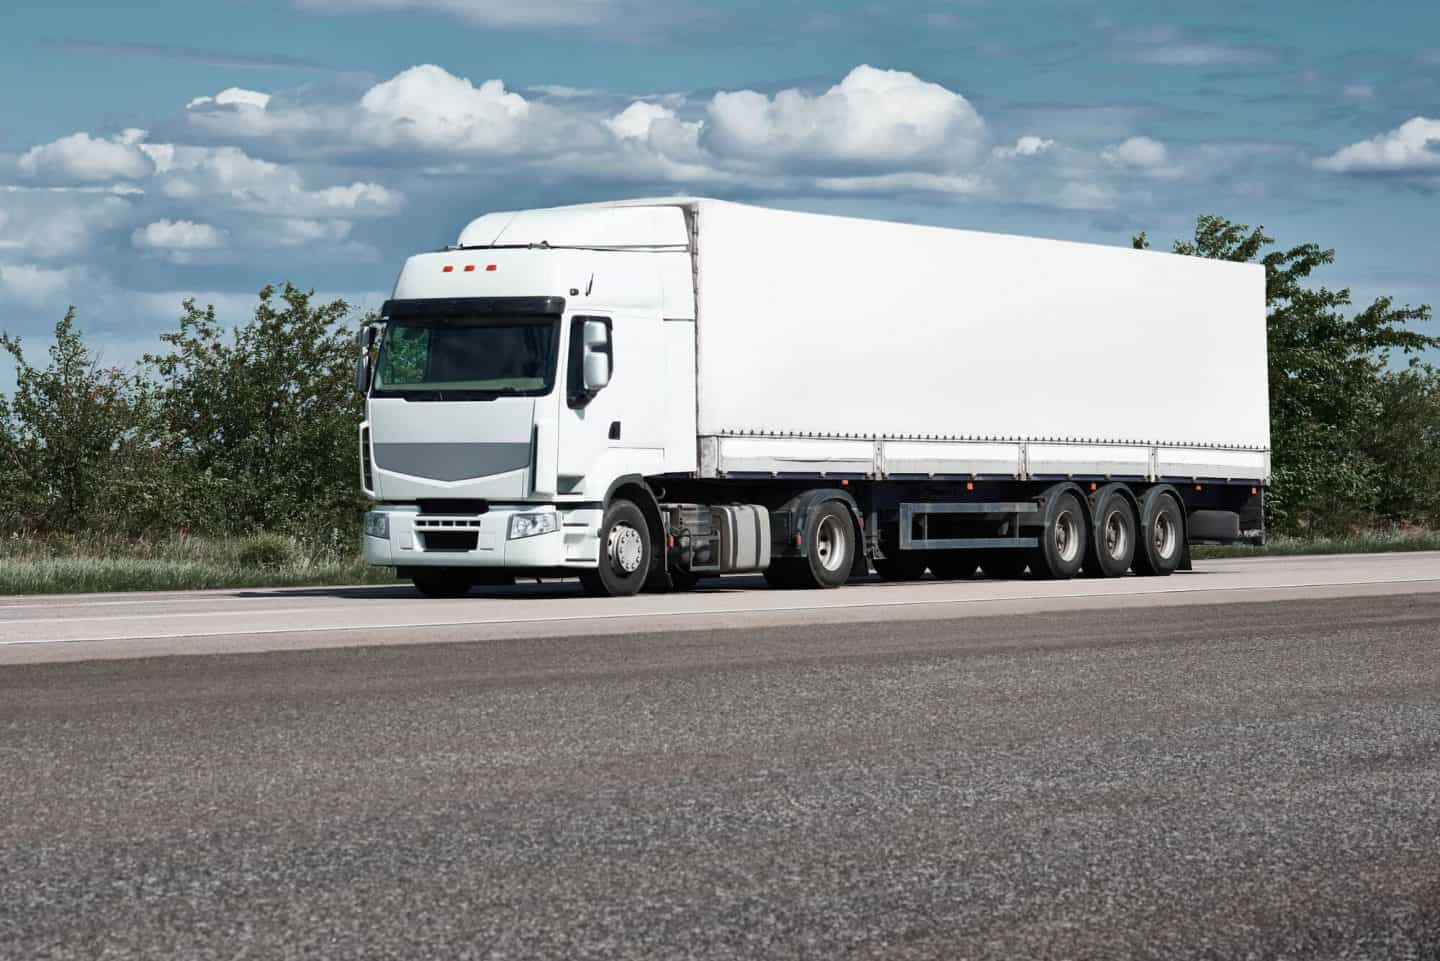 8 Crucial Safety Tips Every Commercial Truck Driver Needs to Remember